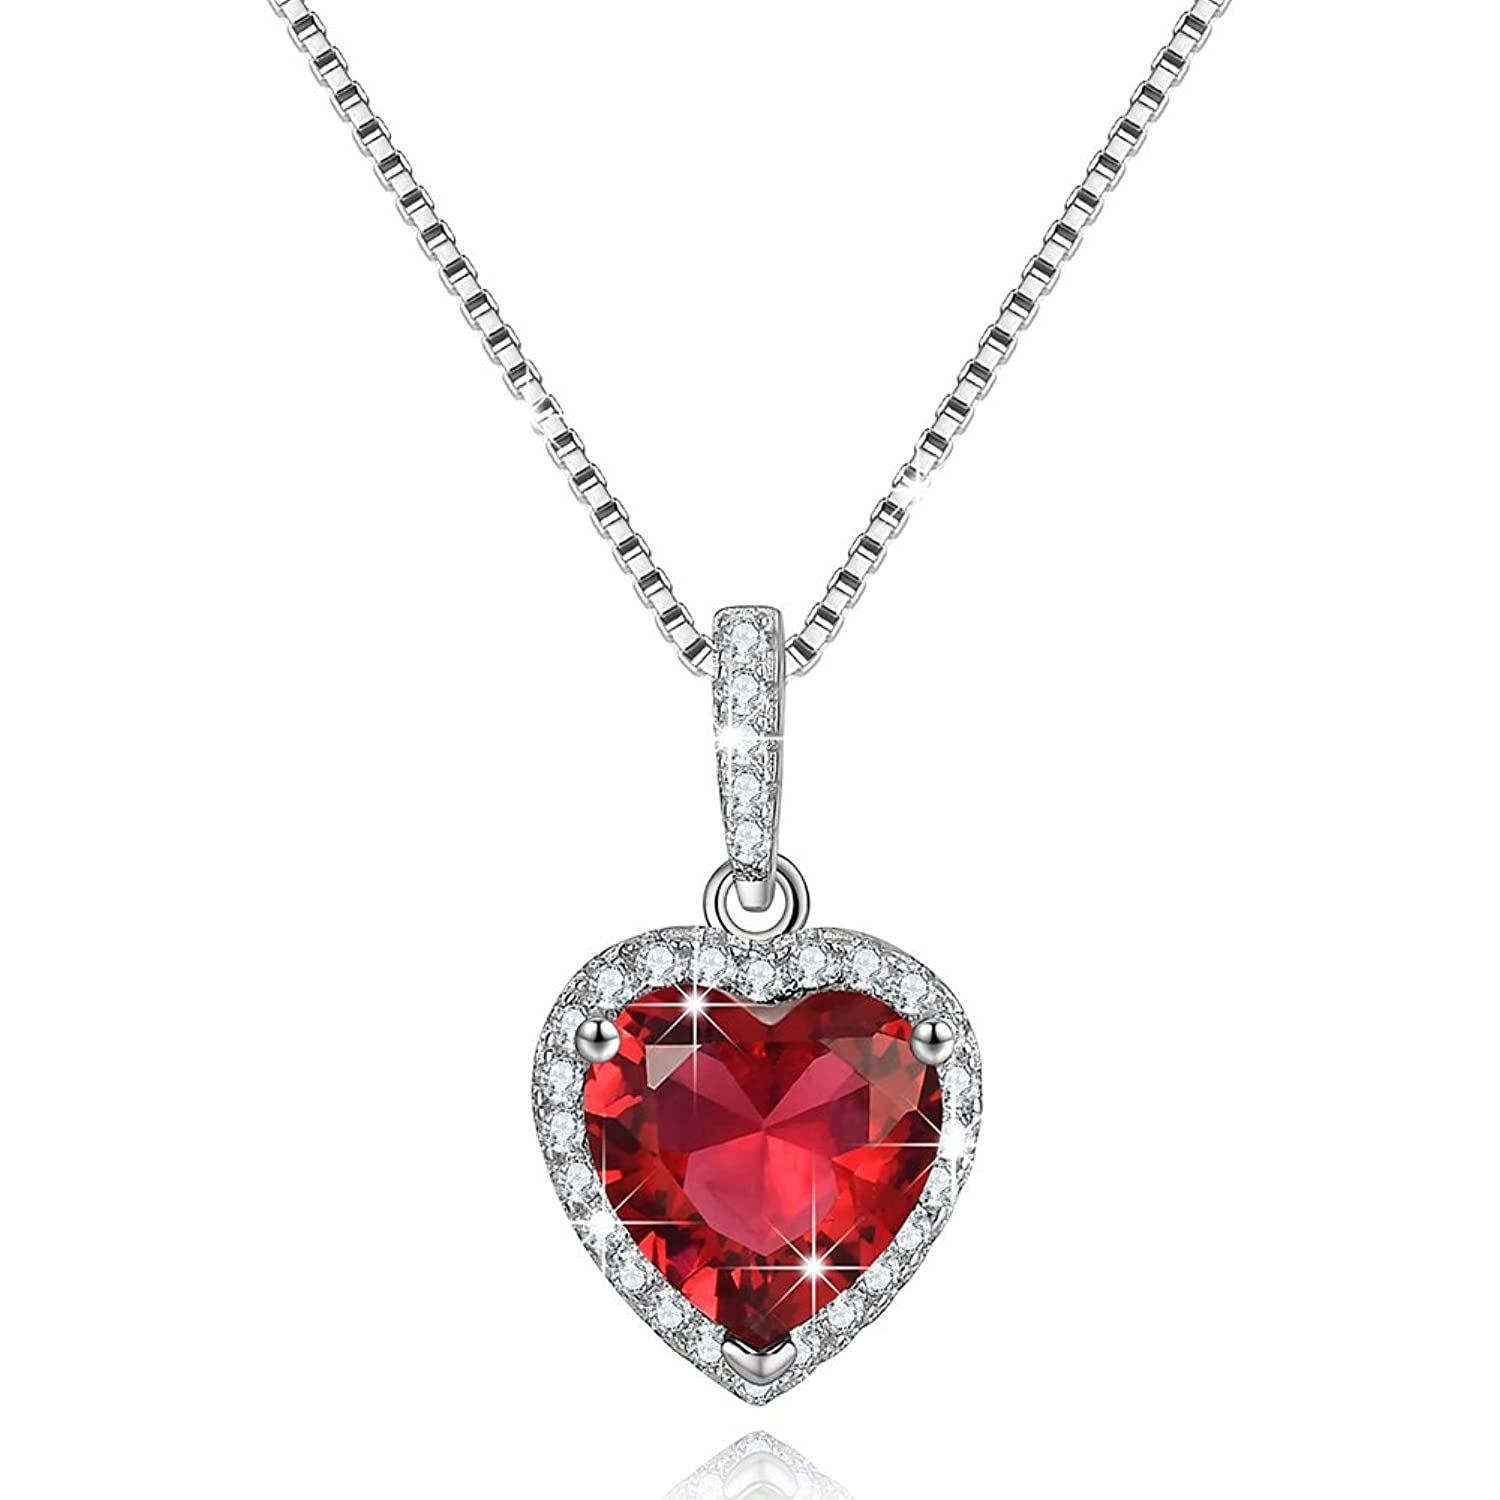 Love Heart Necklace Swarovski Elements Diamond Pendant Necklace Sterling Silver